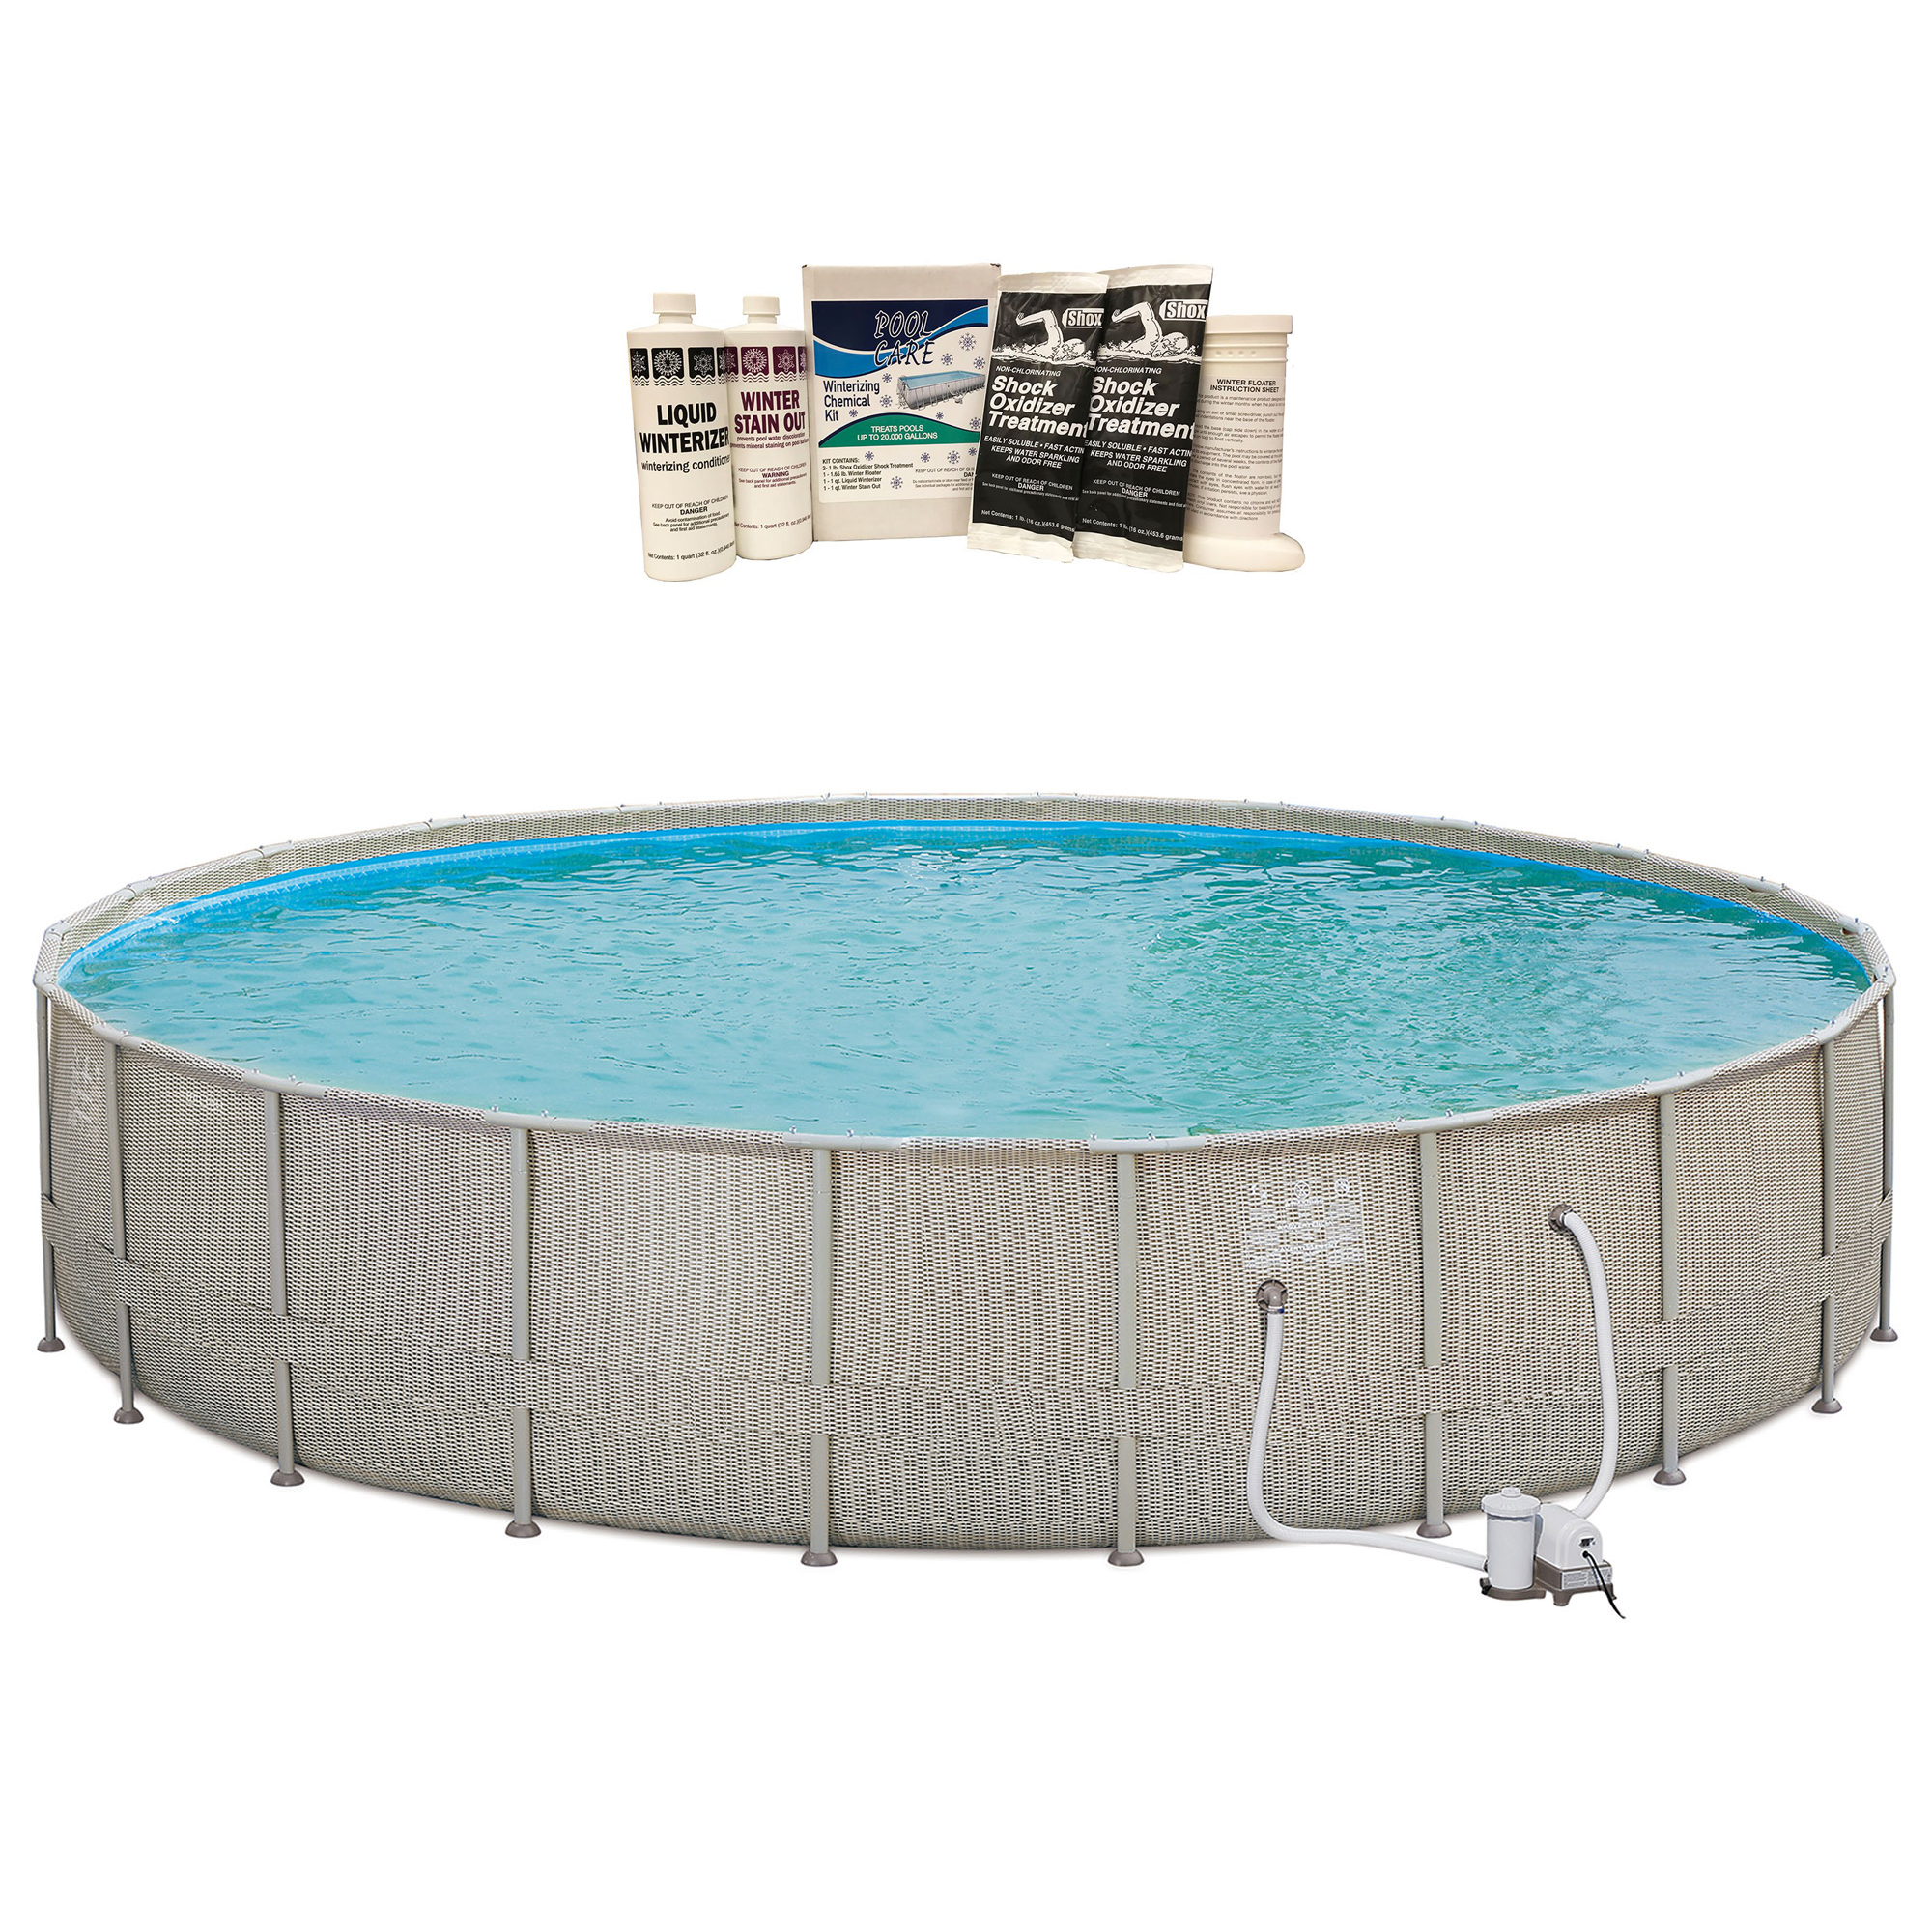 Details about Summer Waves 22\'x4\' Elite Frame Wicker Print Above Ground  Pool & Winterizing Kit